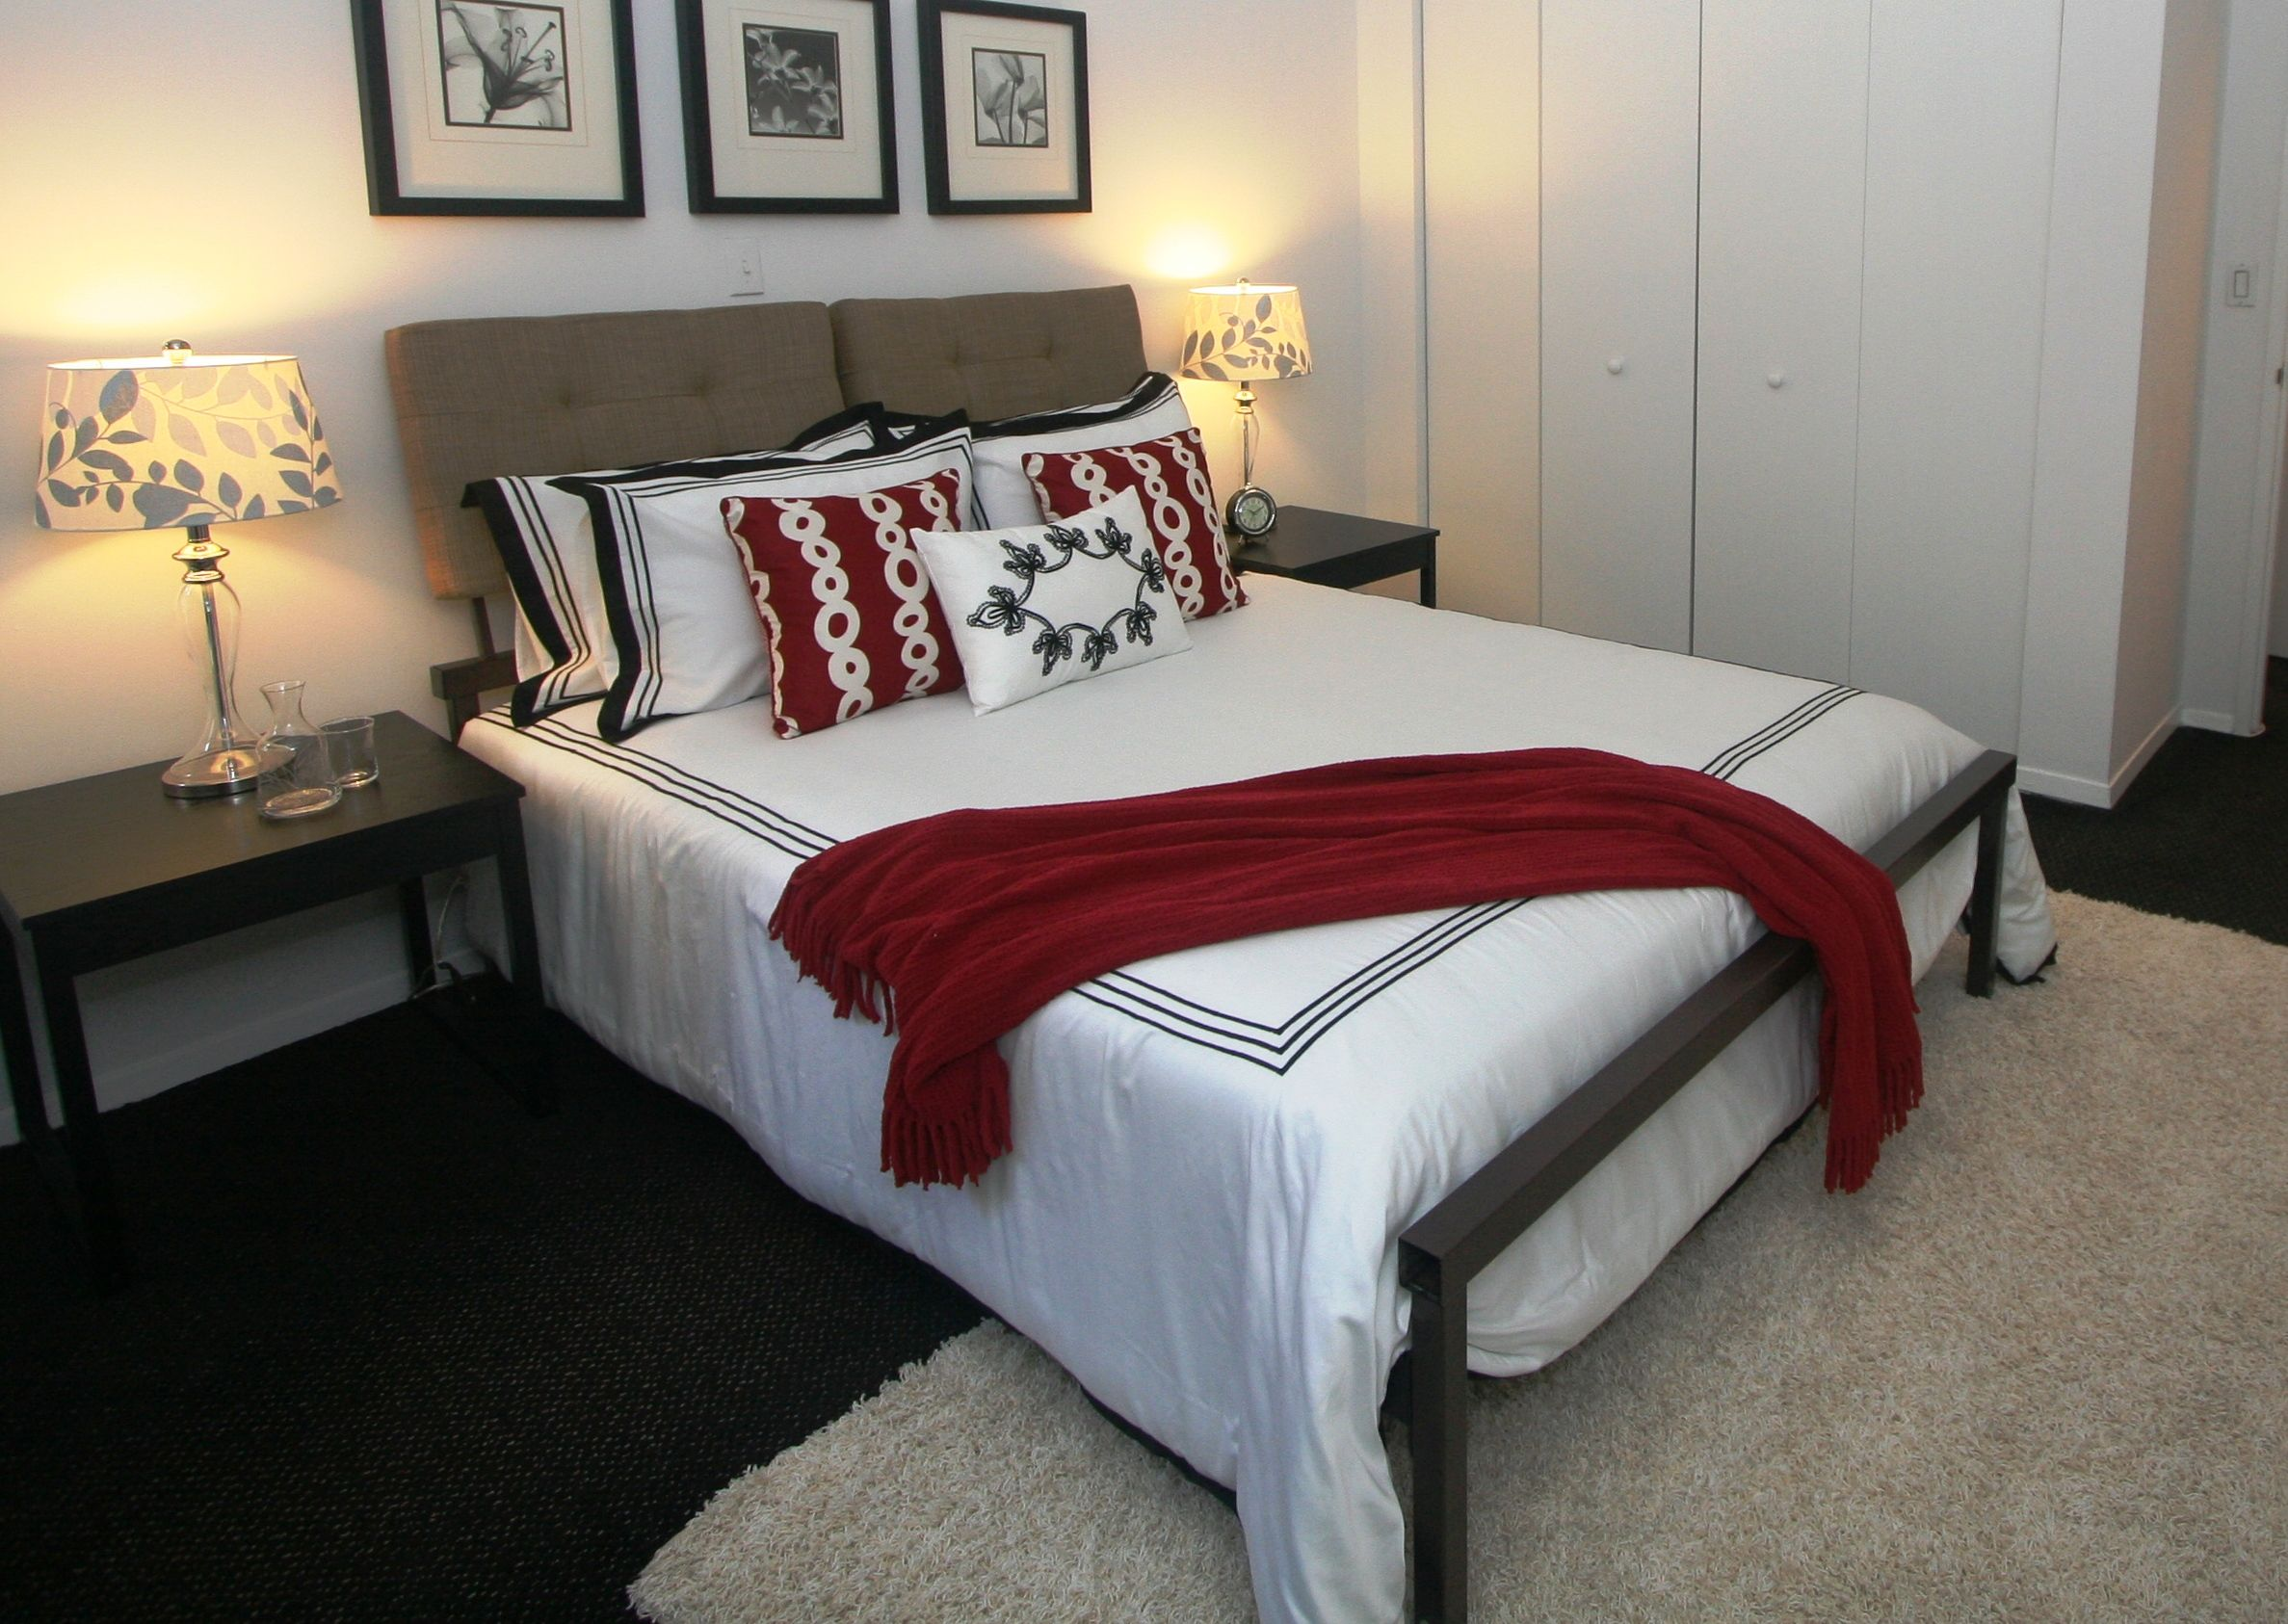 Bedroom With Red Accents Black And White With Red Accents Bedroom Staged To Sell